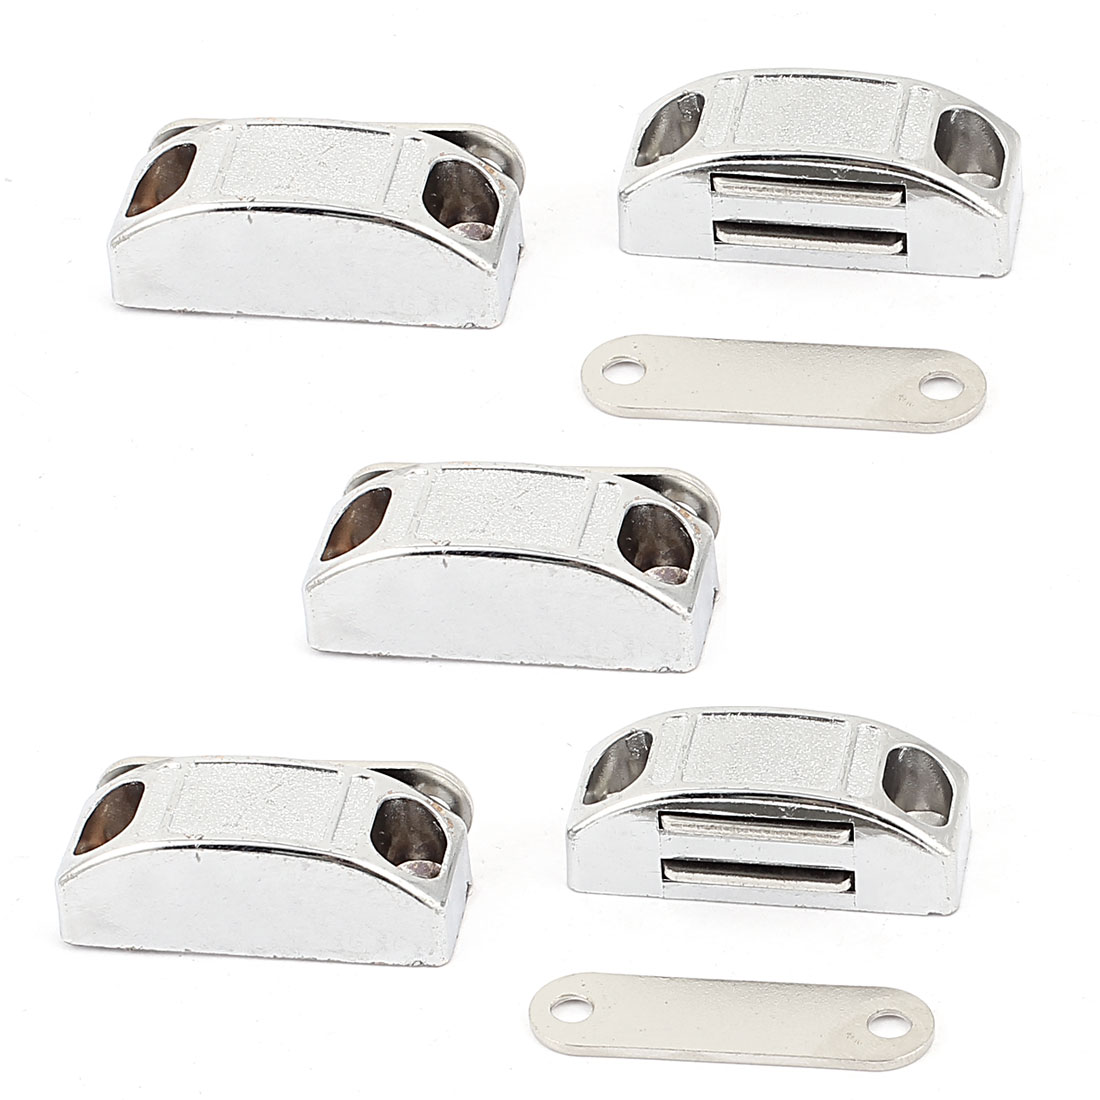 Cupboard Wardrobe Cabinet Door Magnetic Catch Stopper Holder Latch 5pcs w Screws